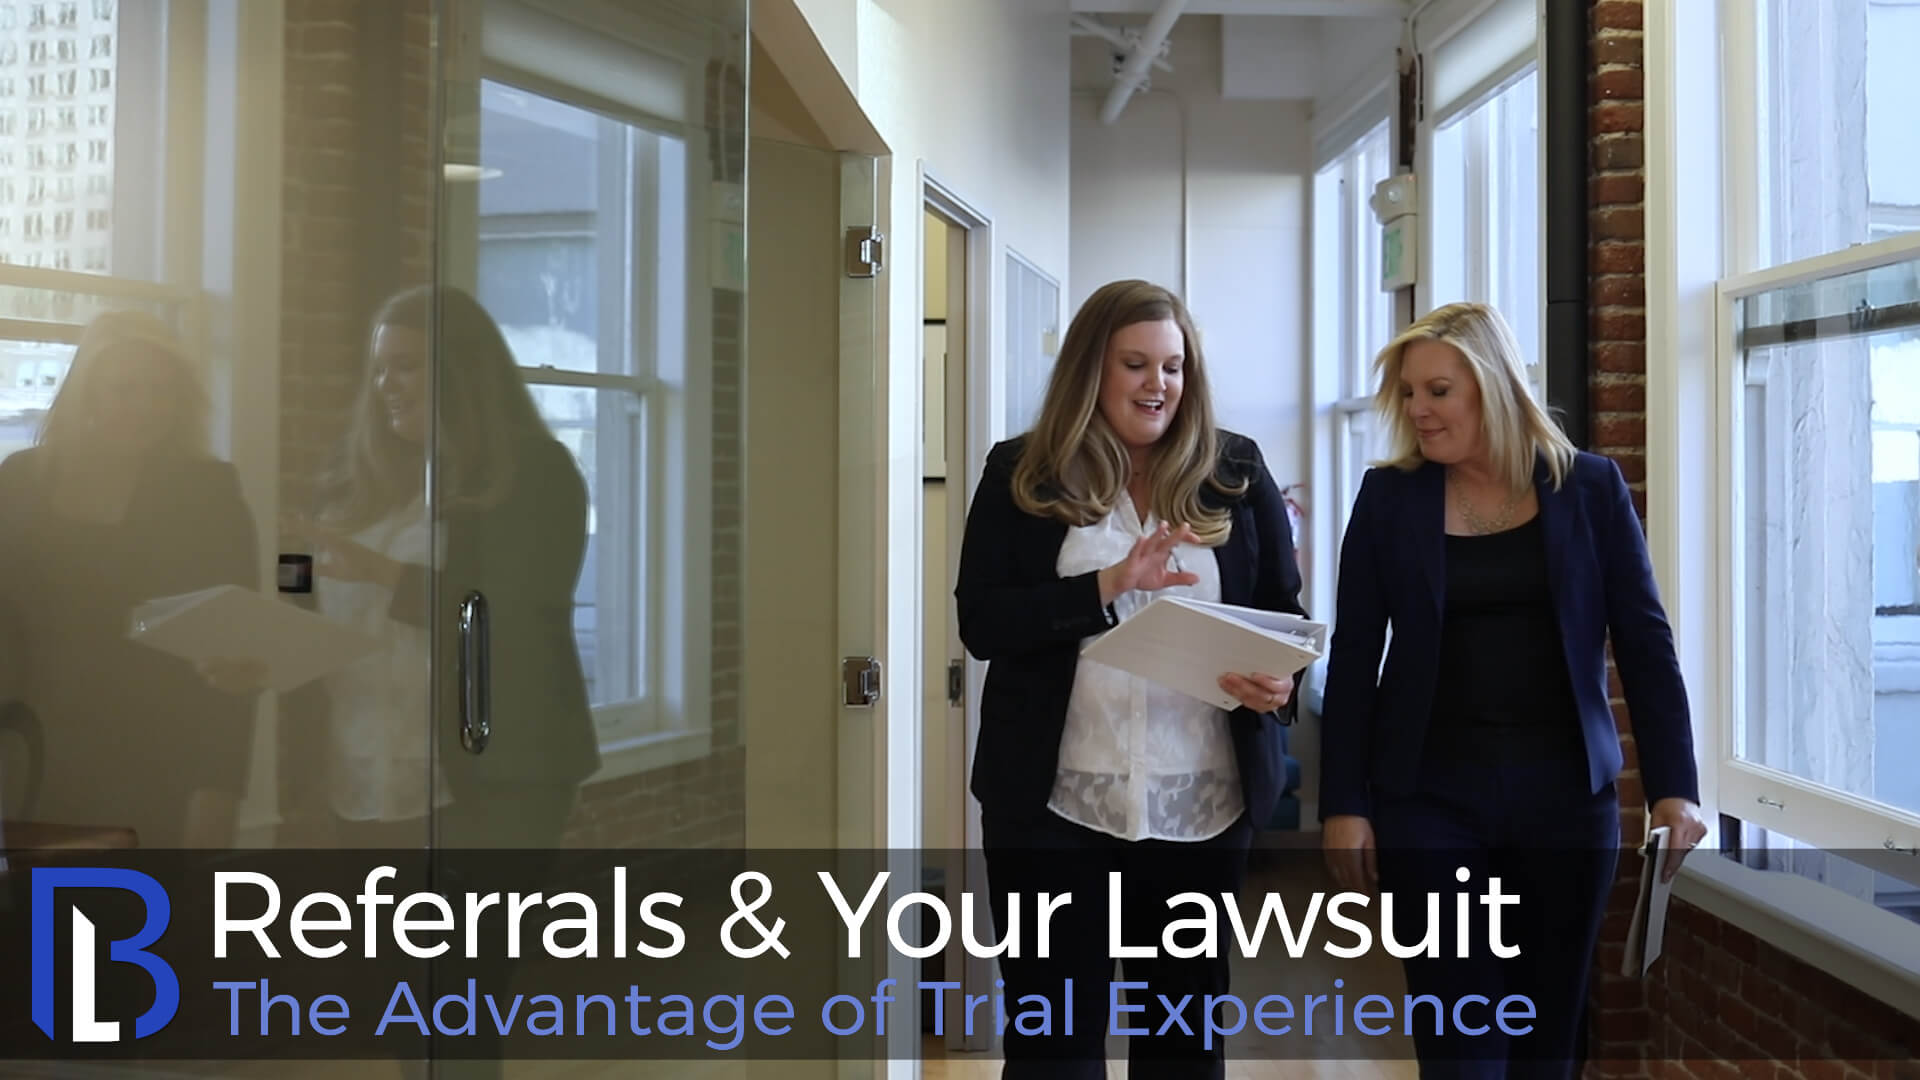 Referrals & Your Lawsuit